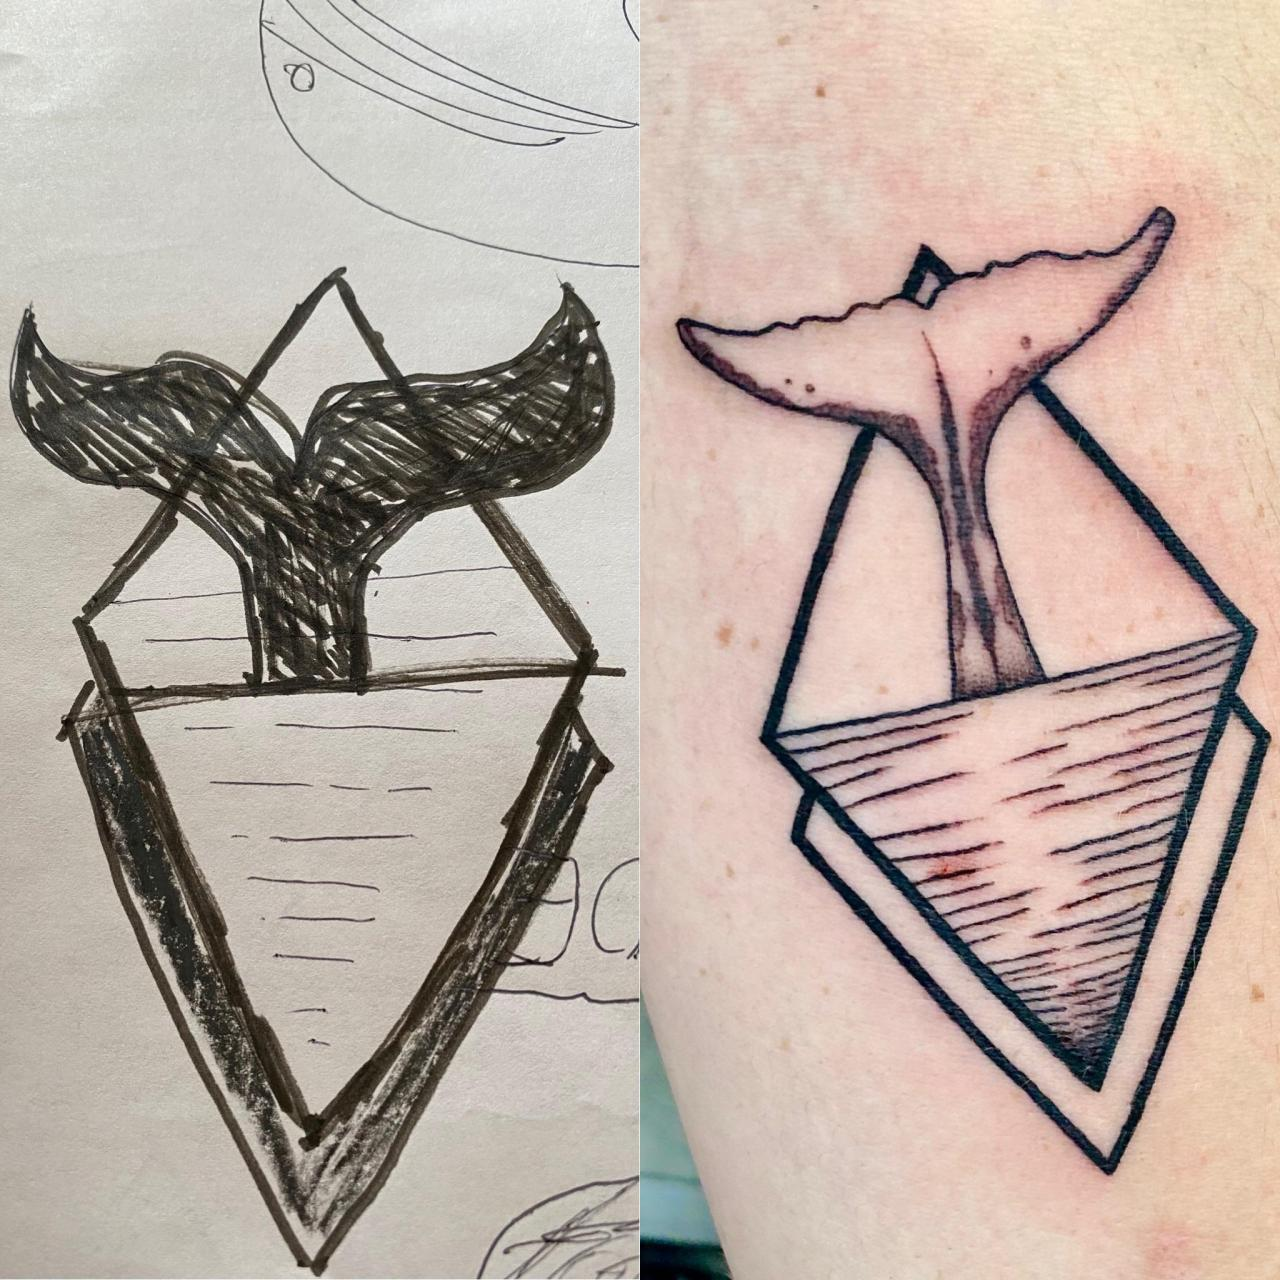 My sketch vs. the finished product. Very excited to see my crude vision brought to life so nicely in my first tattoo. I chose a whale, after my son Jonah. Done by Russel at The Blackest Crow.